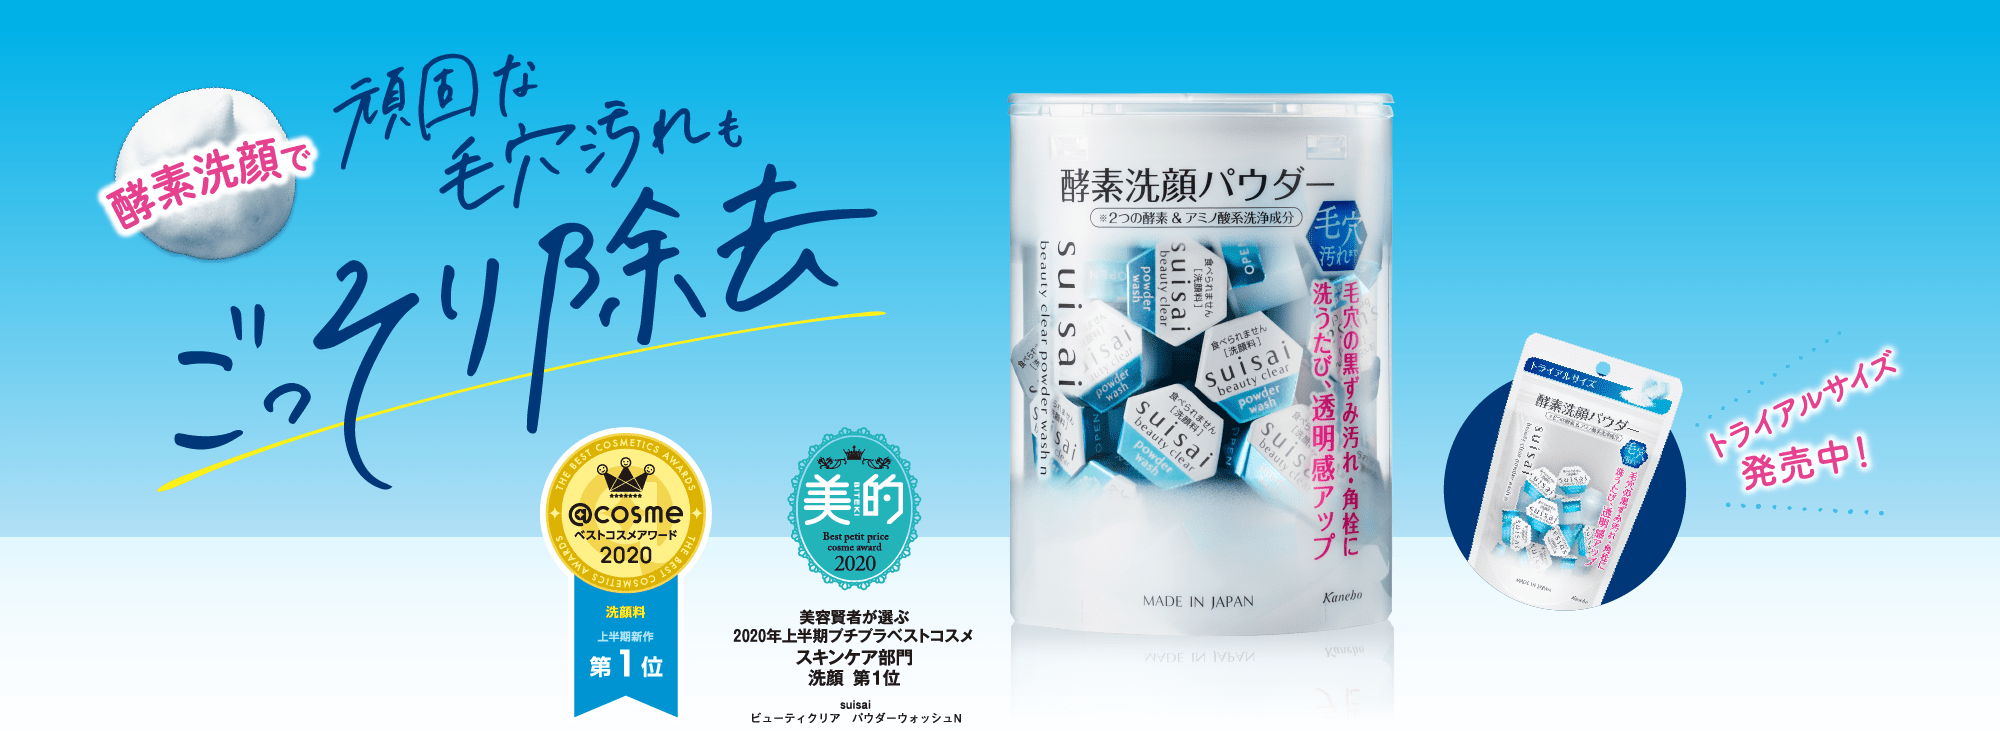 https://kao-h.assetsadobe3.com/is/image/content/dam/sites/kanebo/www-kanebo-cosmetics-jp/suisai/renewal/products/powder_wash_n/powder_wash_n-kv-m-200807.png?fmt=png-alpha&wid=2000